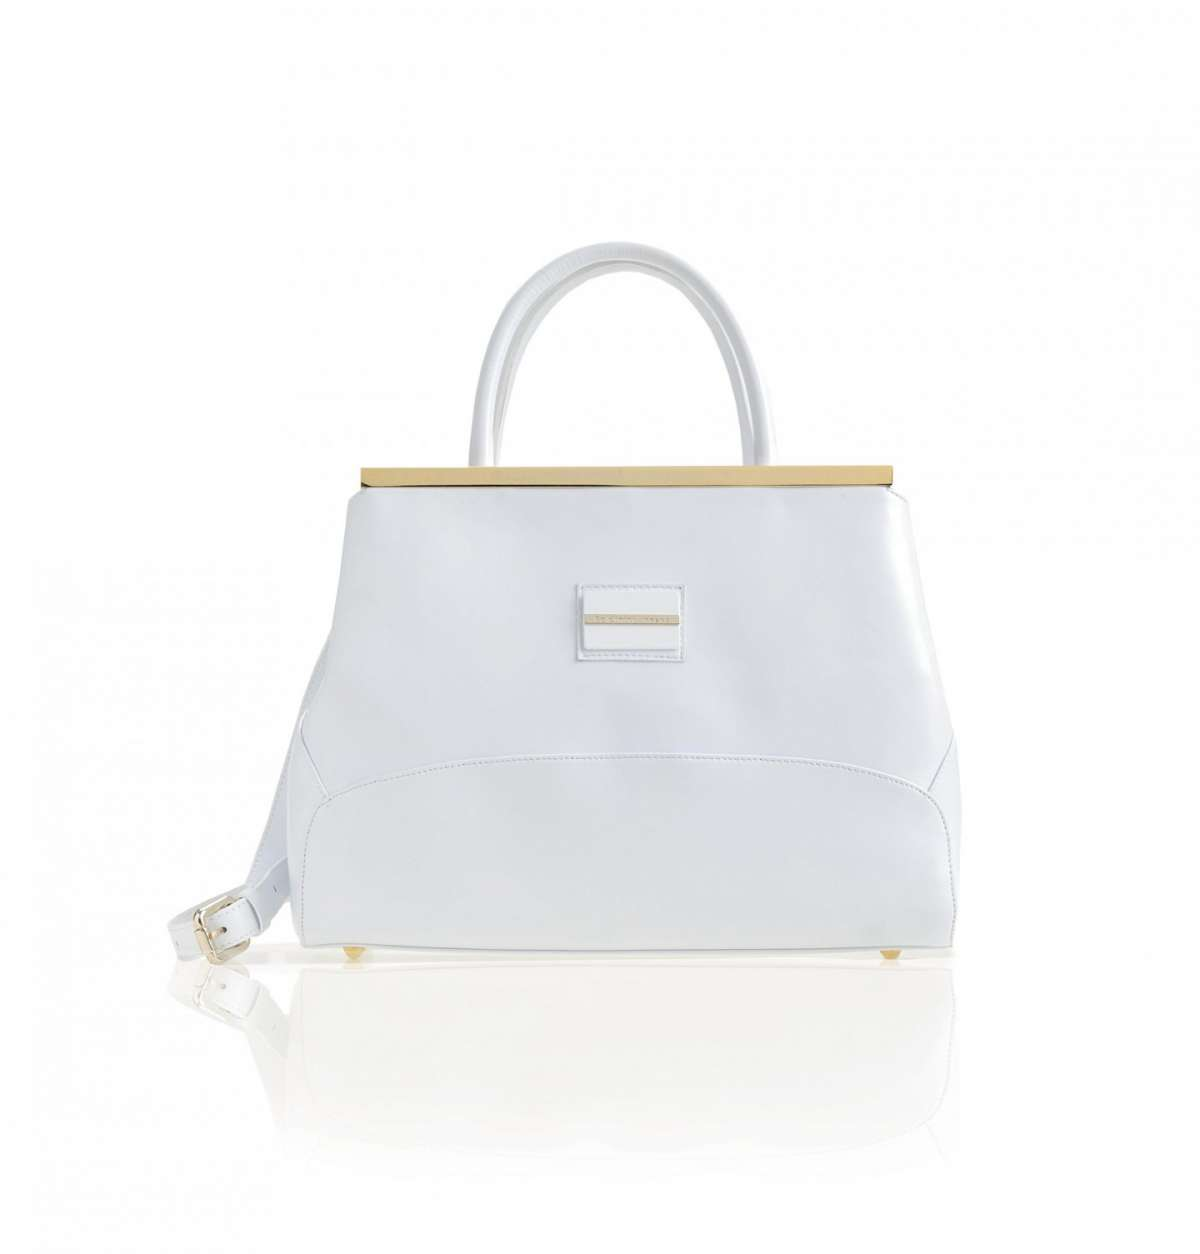 Tote bag total white